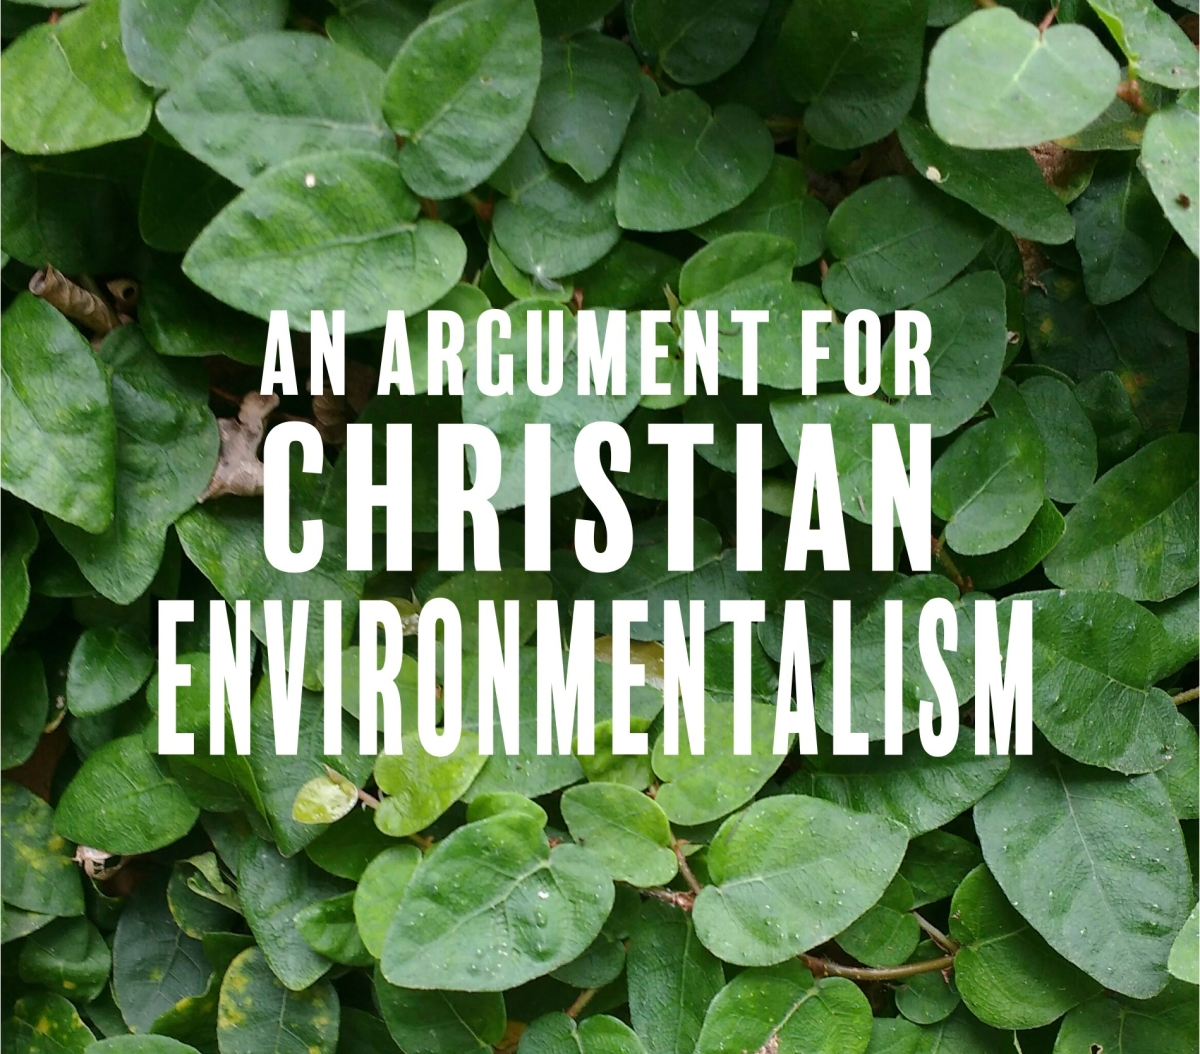 An Argument for Christian Environmentalism